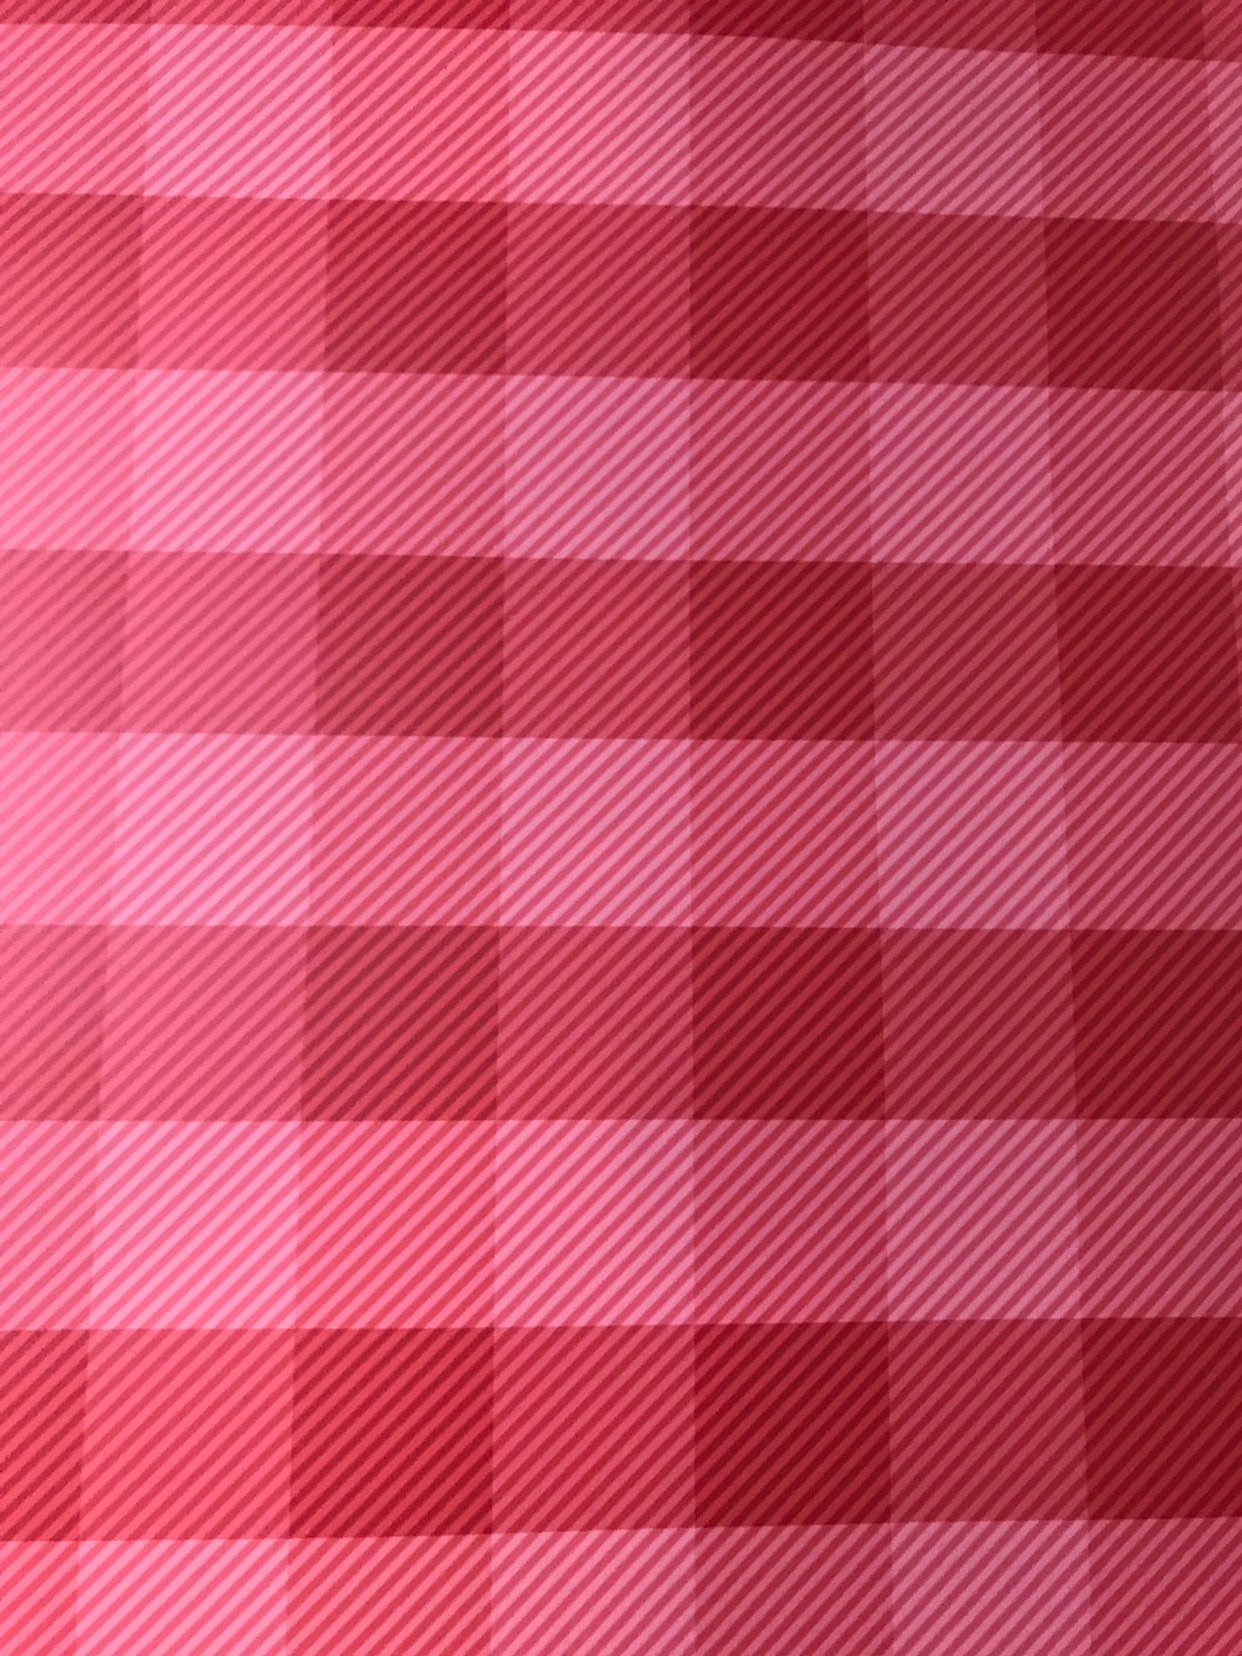 Plaid Transfer Vinyl HTV